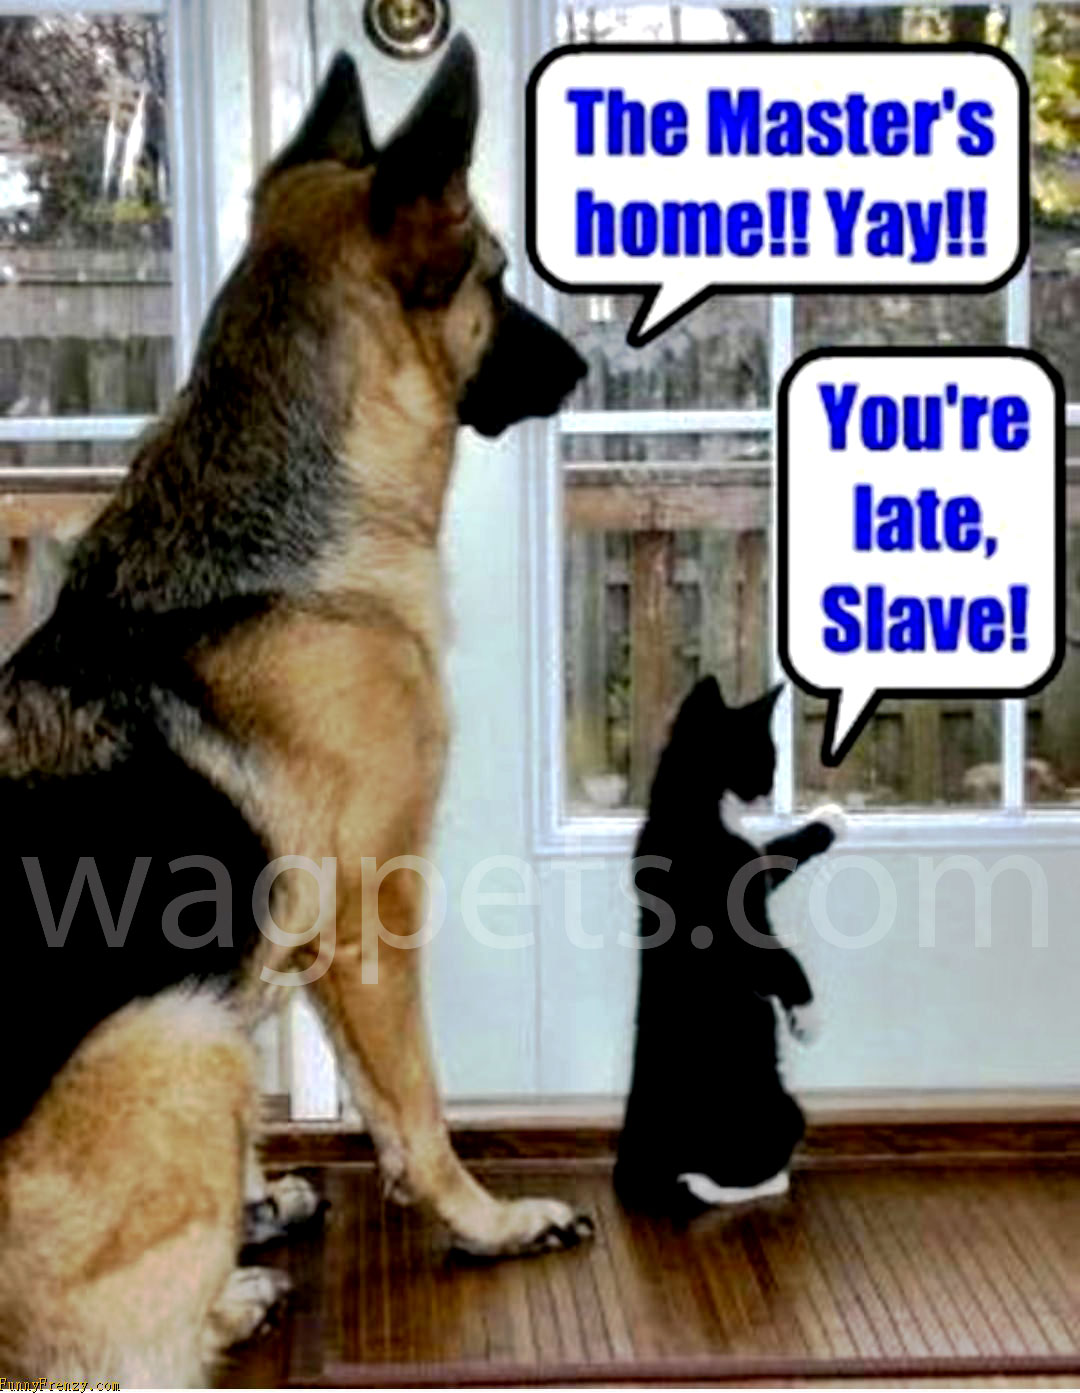 The Master`s home!! Yay!! You are late, Slave!